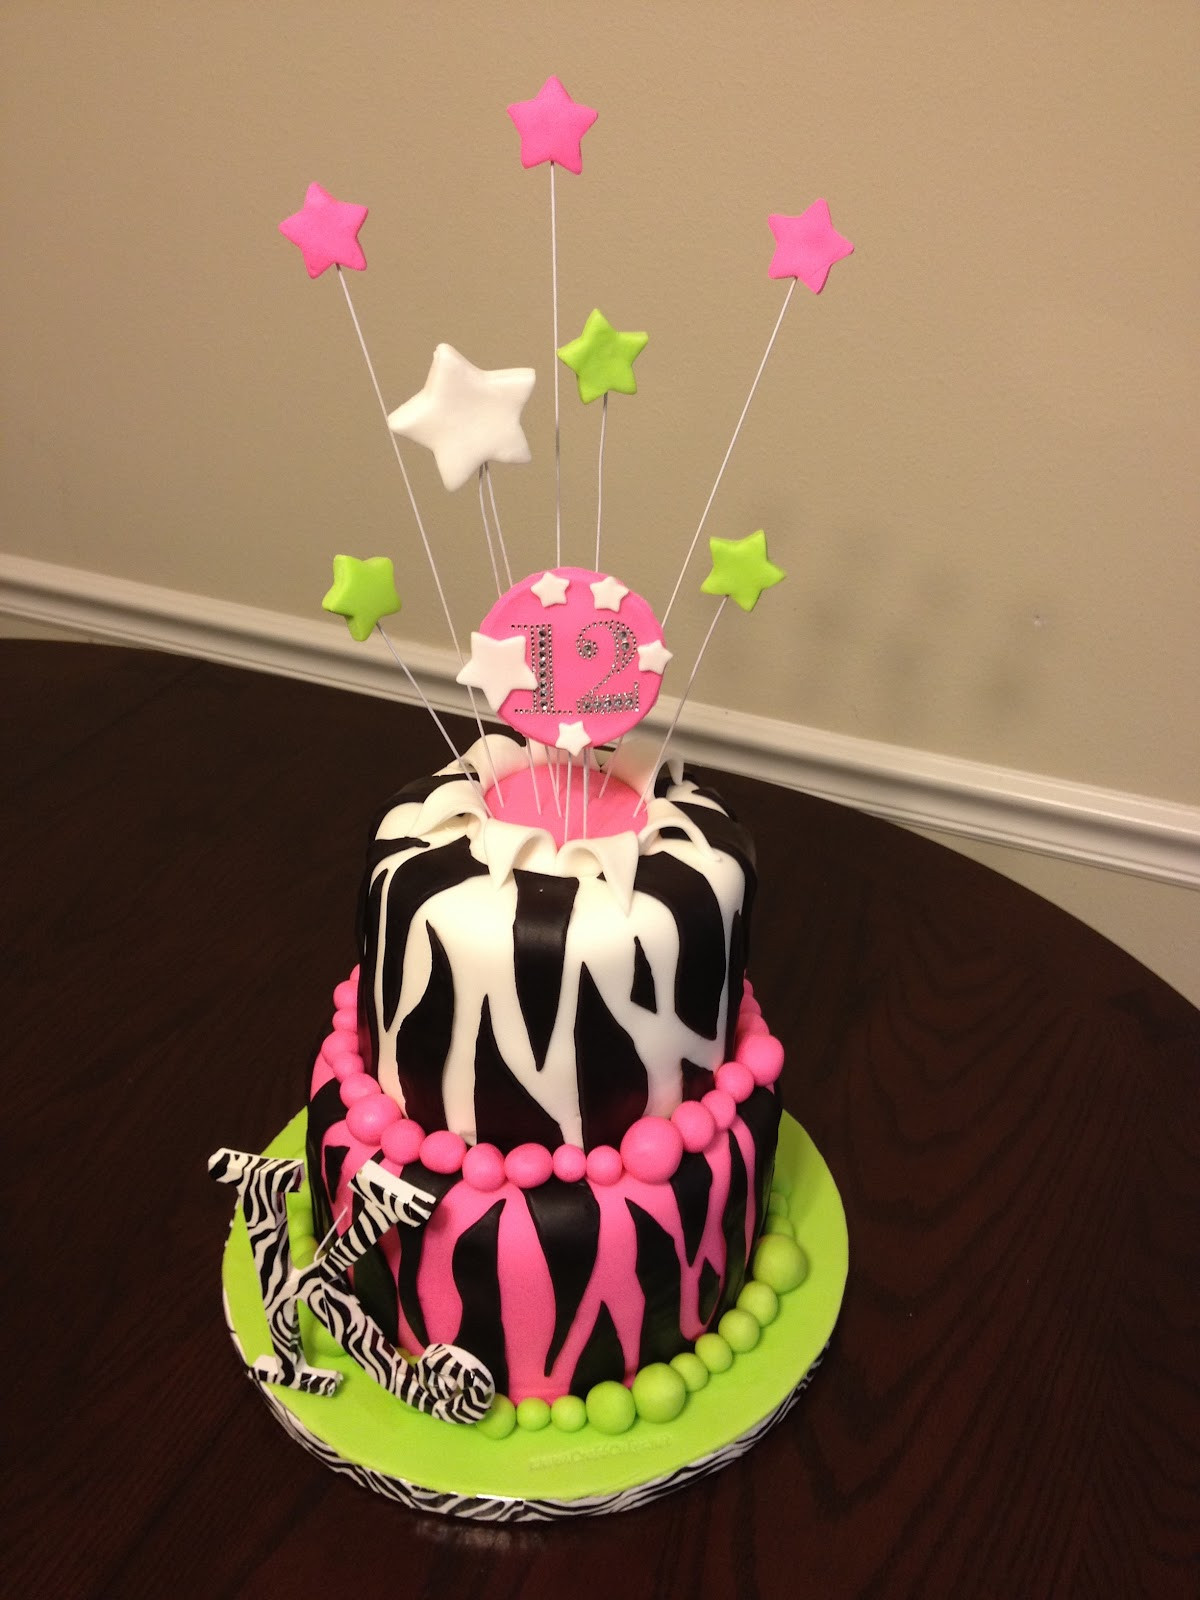 Best ideas about Birthday Cake For 12 Years Old Girl . Save or Pin CrabbCakes 12 year old girl s zebra theme birthday cake Now.